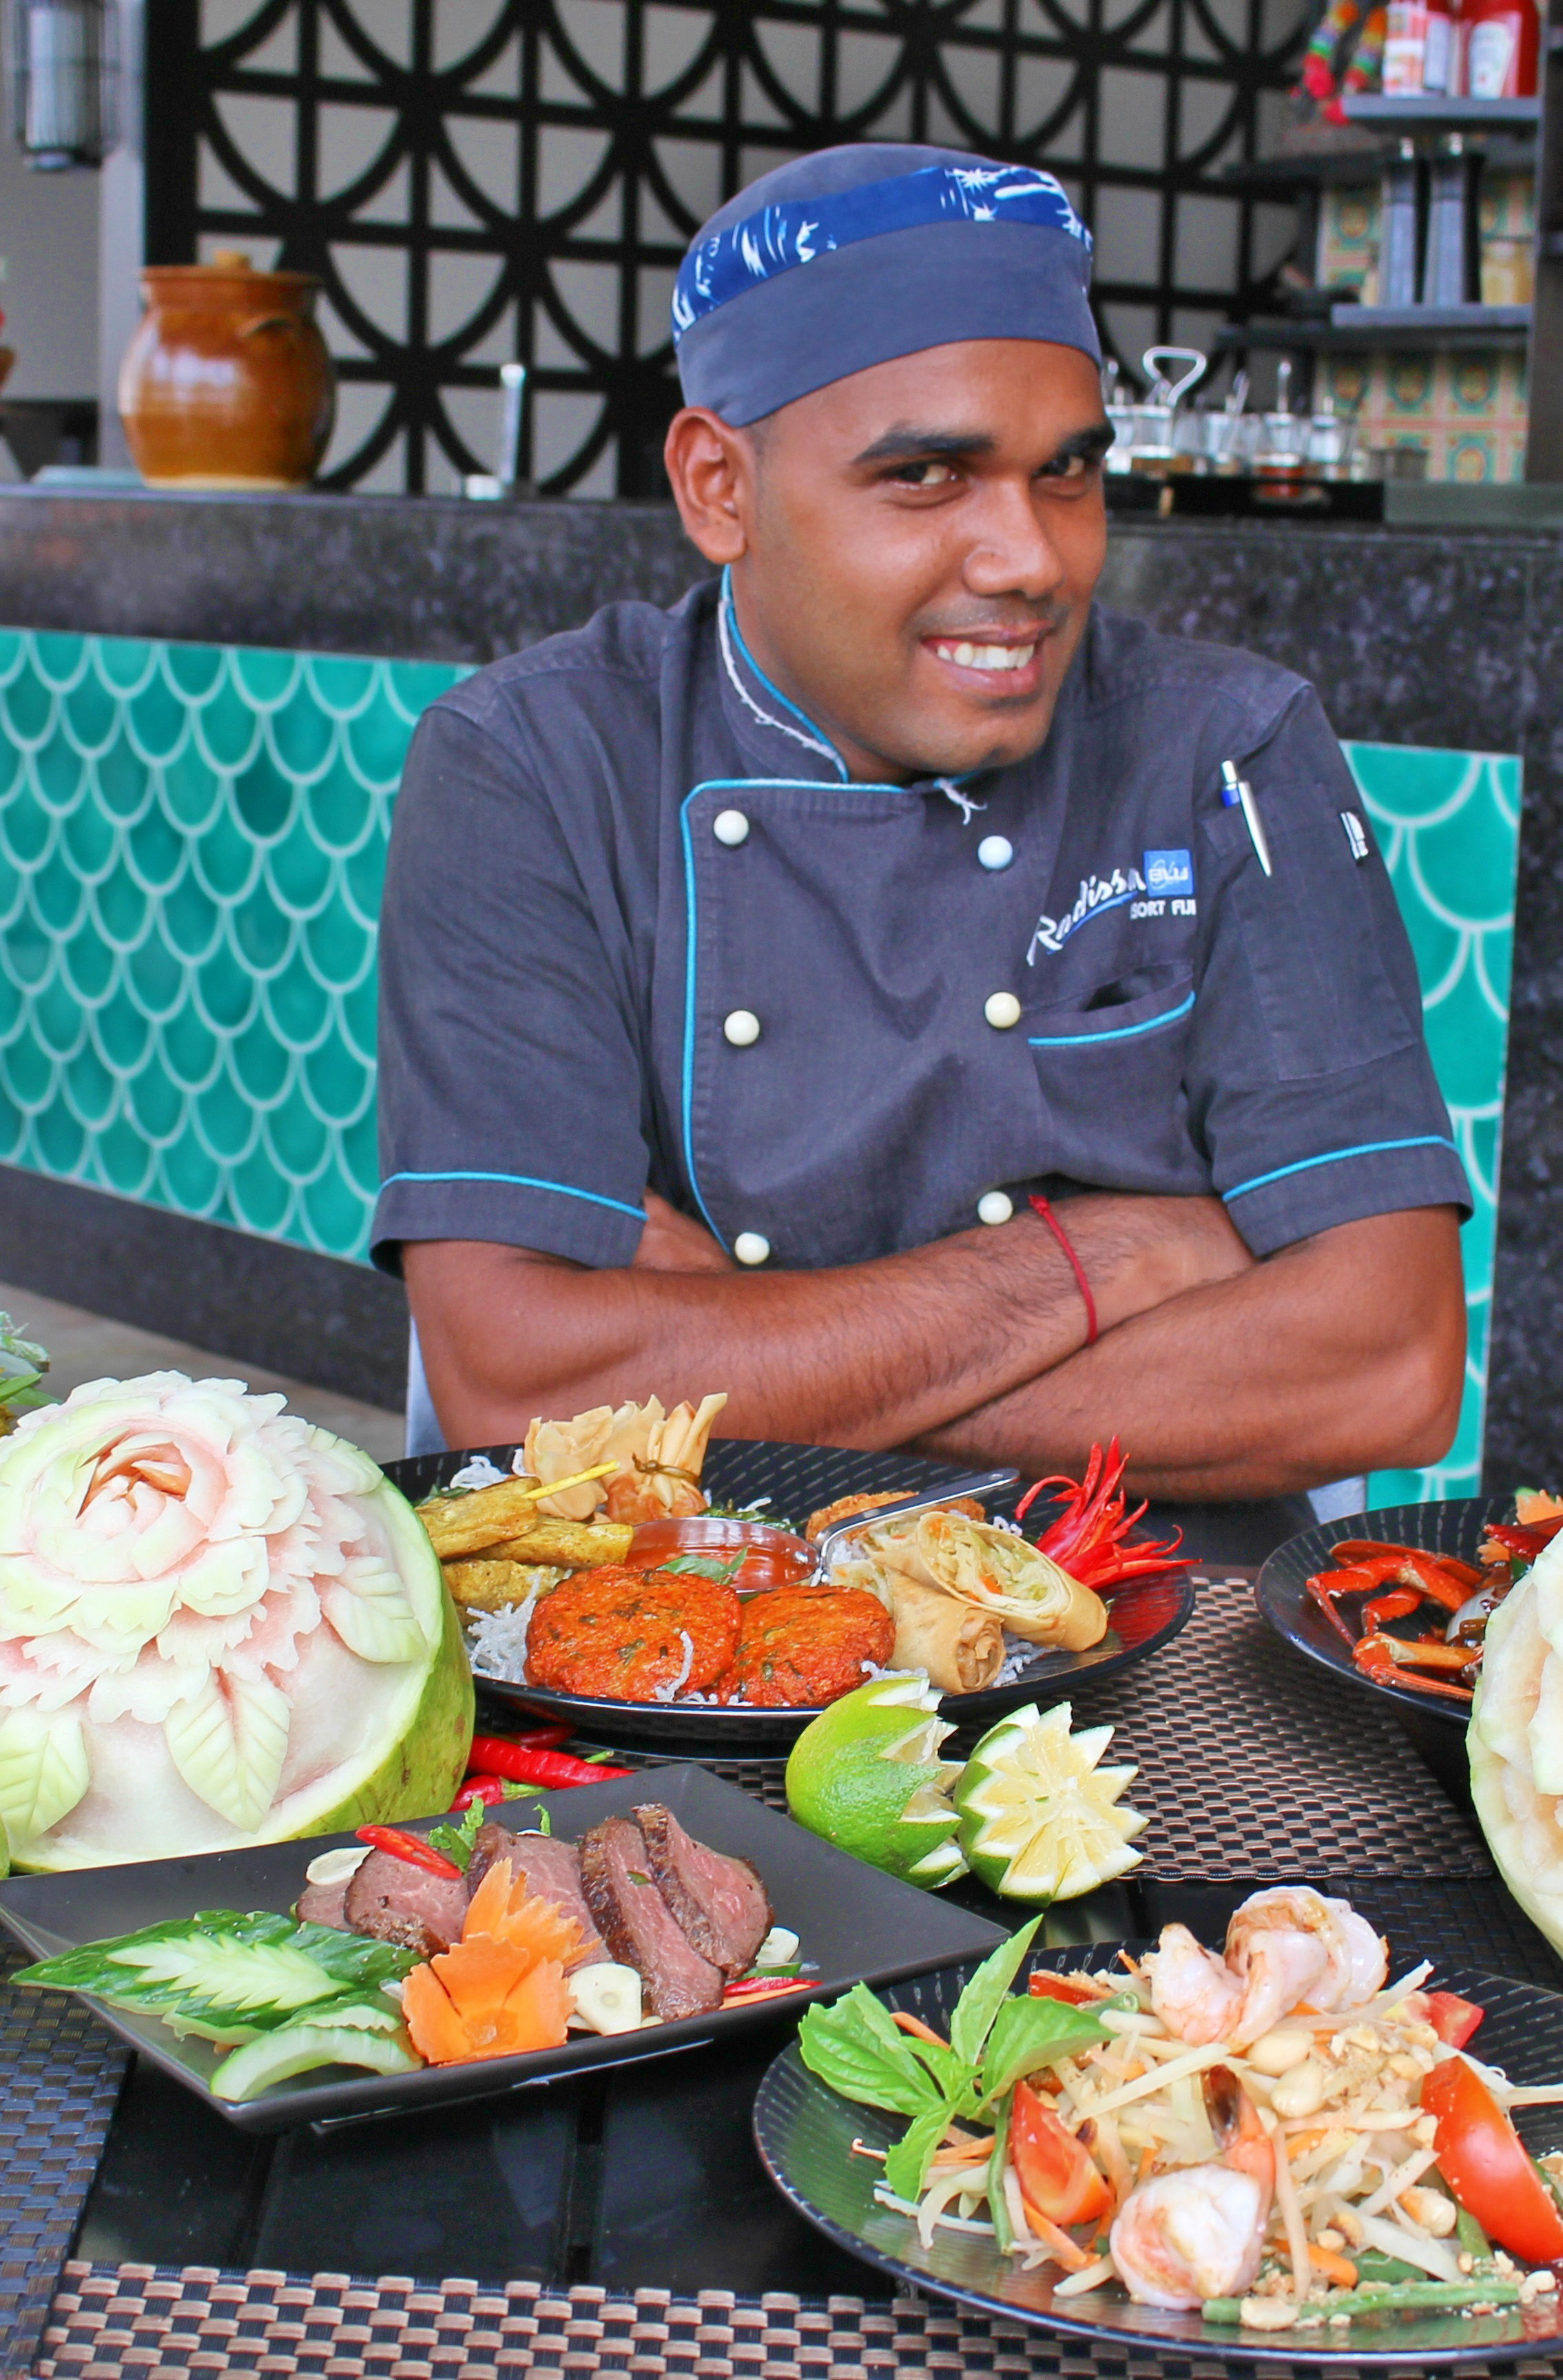 Chef Shelvin with his signature Thai Grilled Beef Salad and other meals. Photo: MARIKA SERU/RADISSON BLU